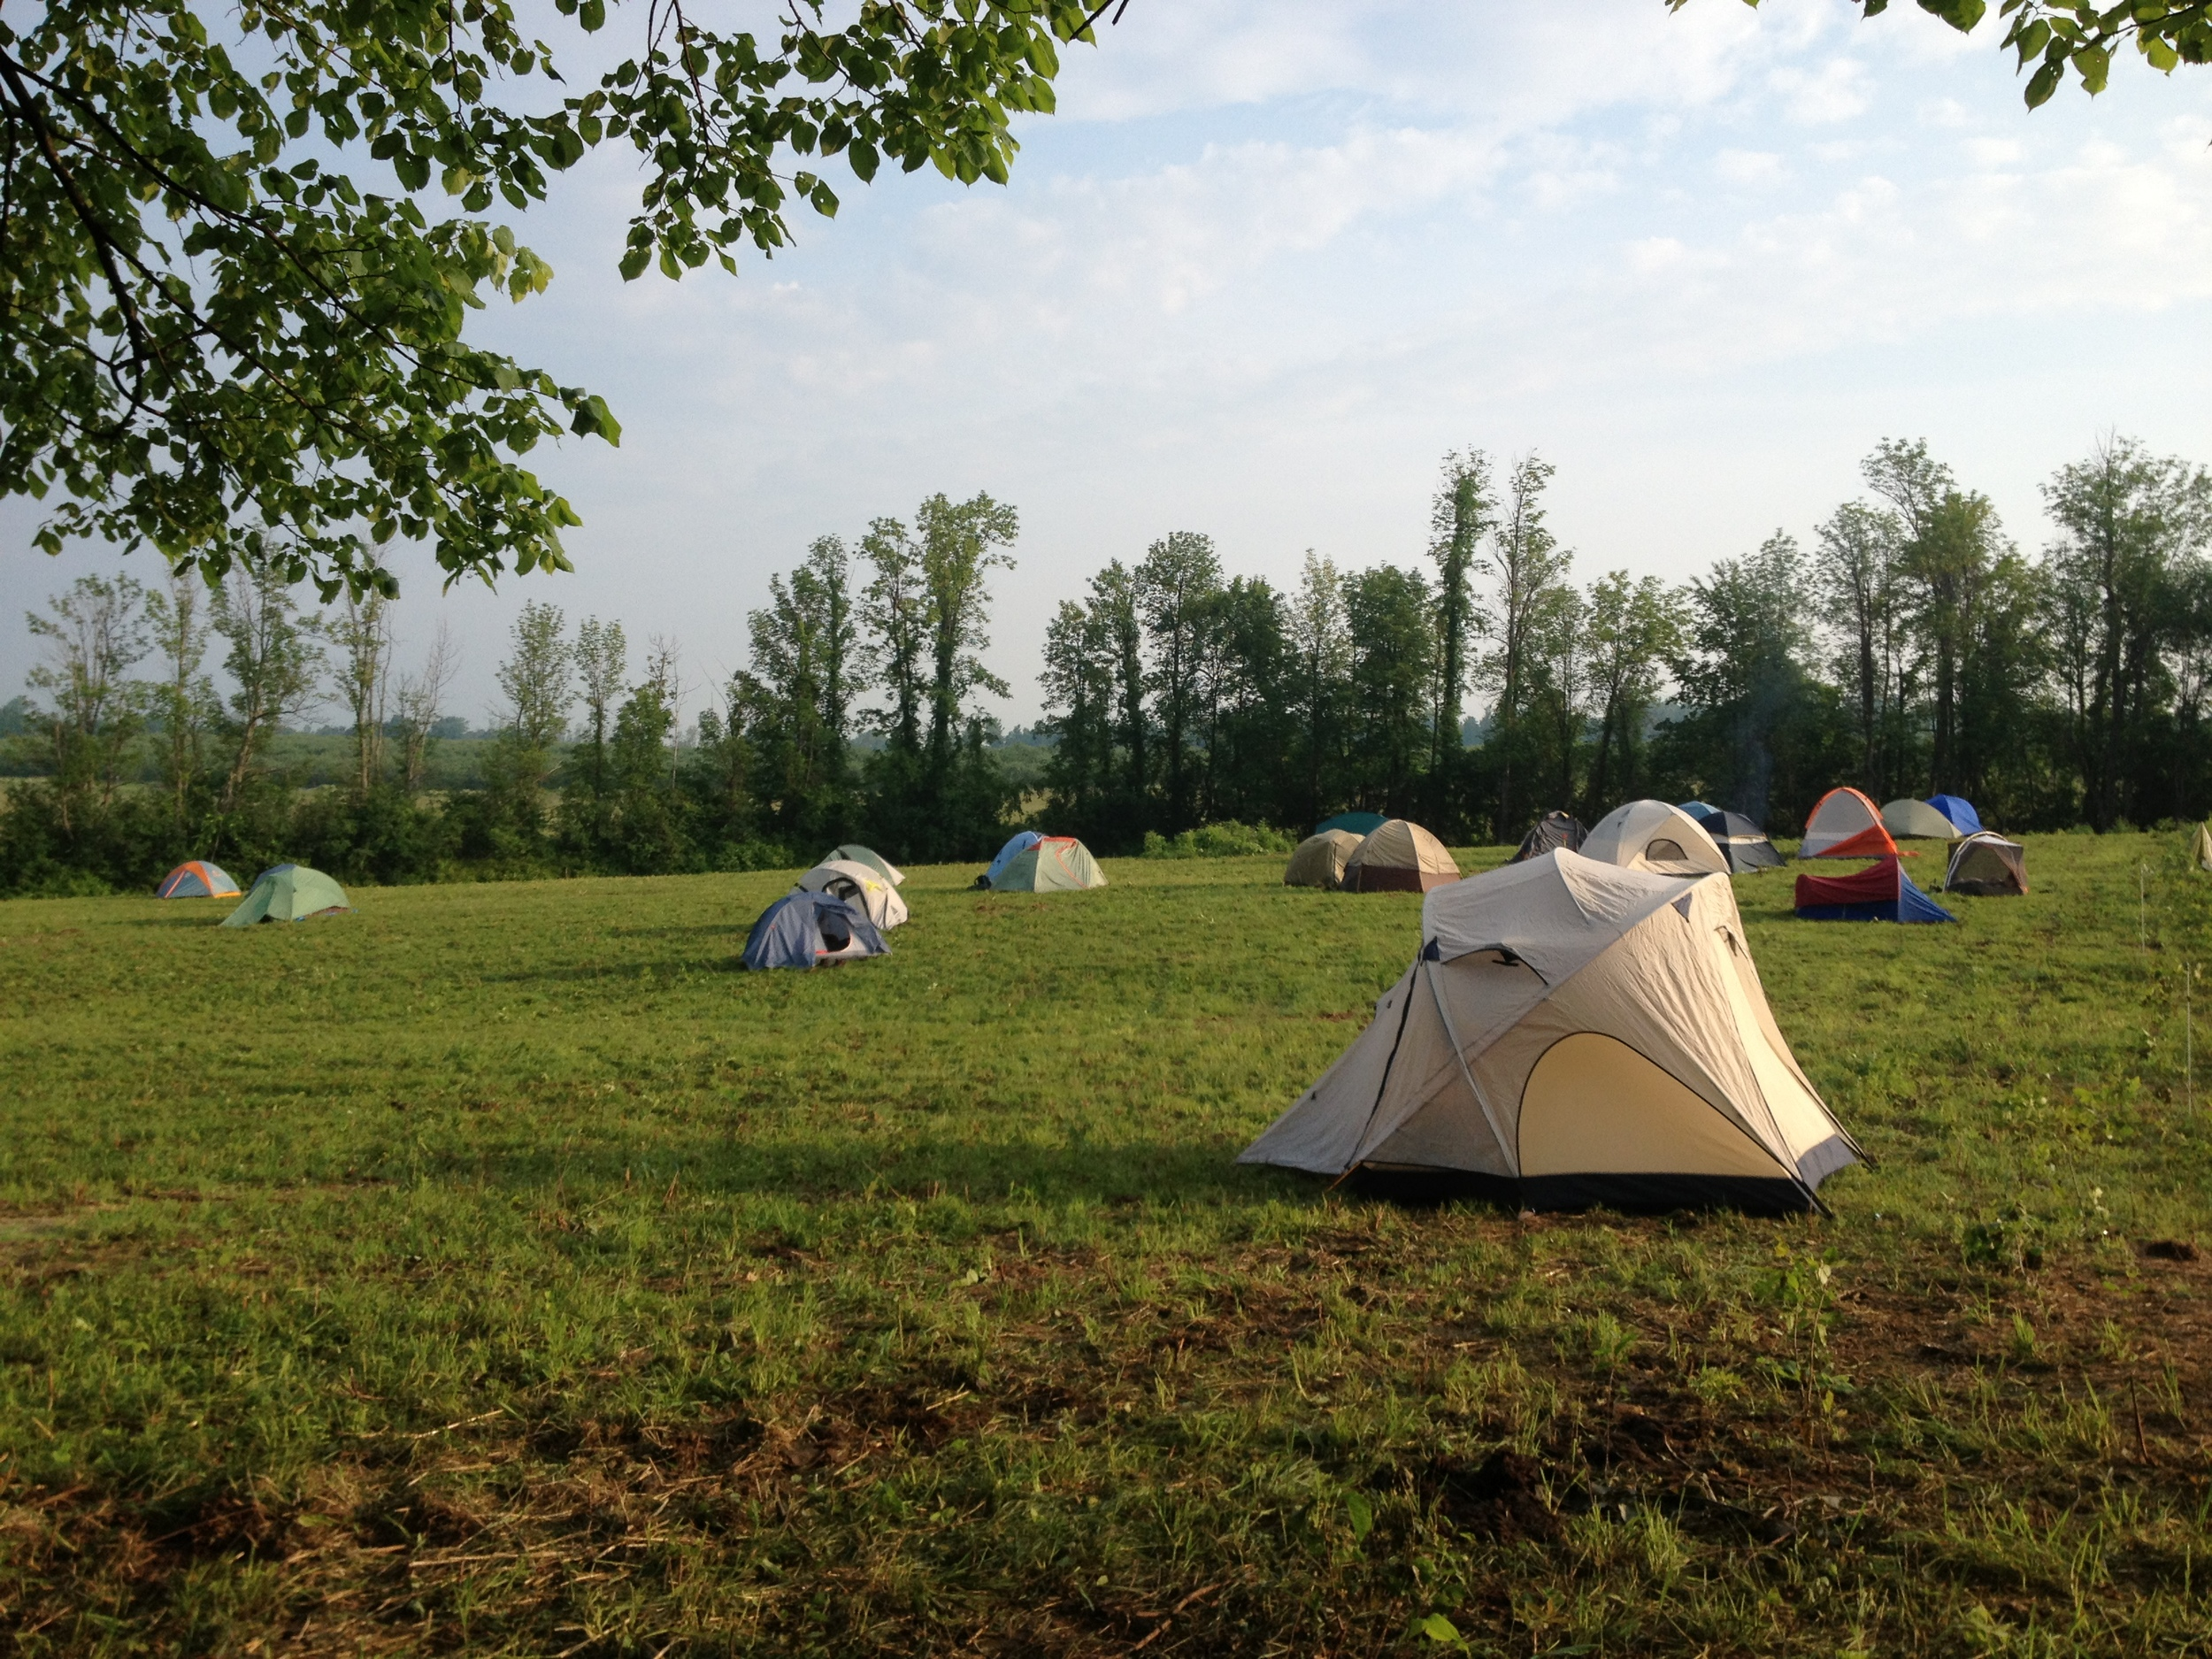 By the light of morning, you can hardly tell that all these tents were pitched in the pitch black of night!